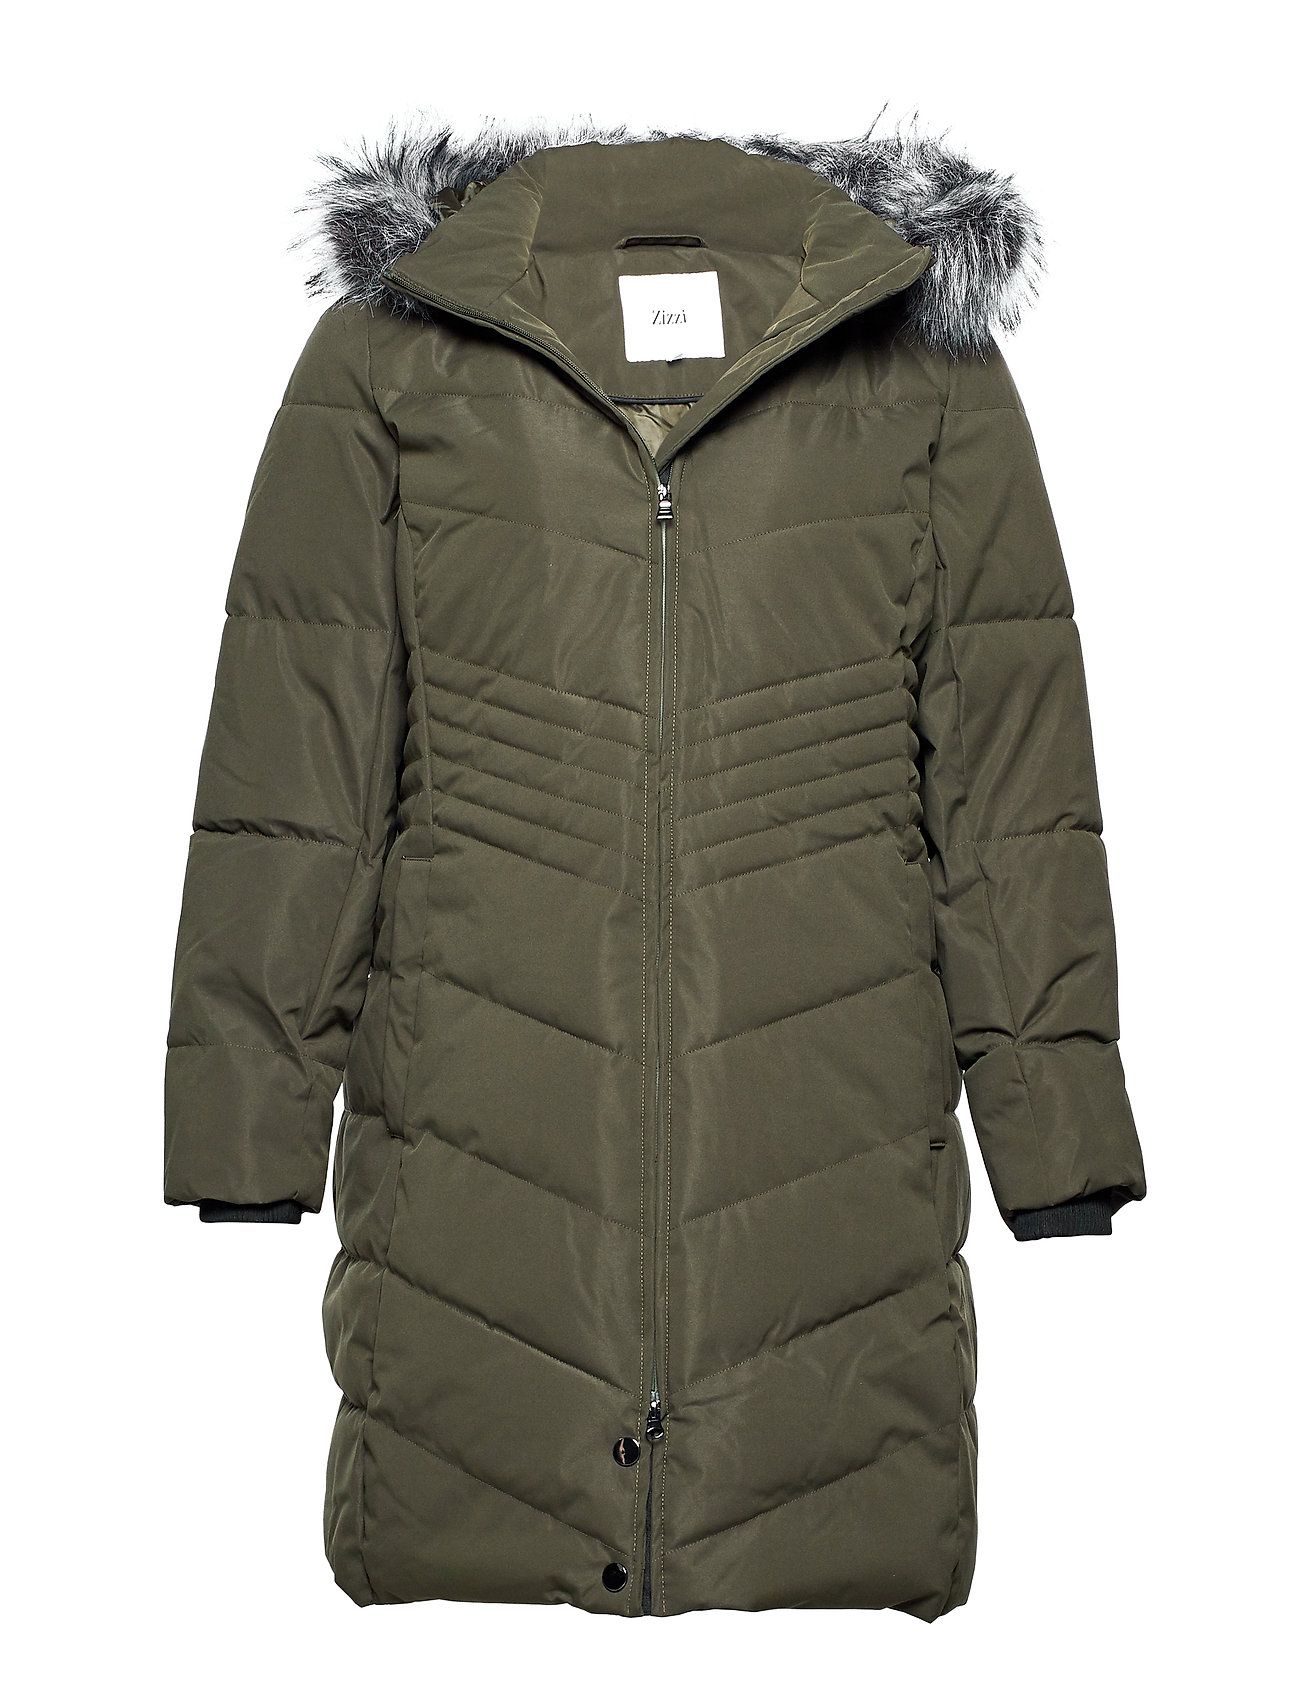 Zizzi MLUXA, L/S, COAT - GREEN